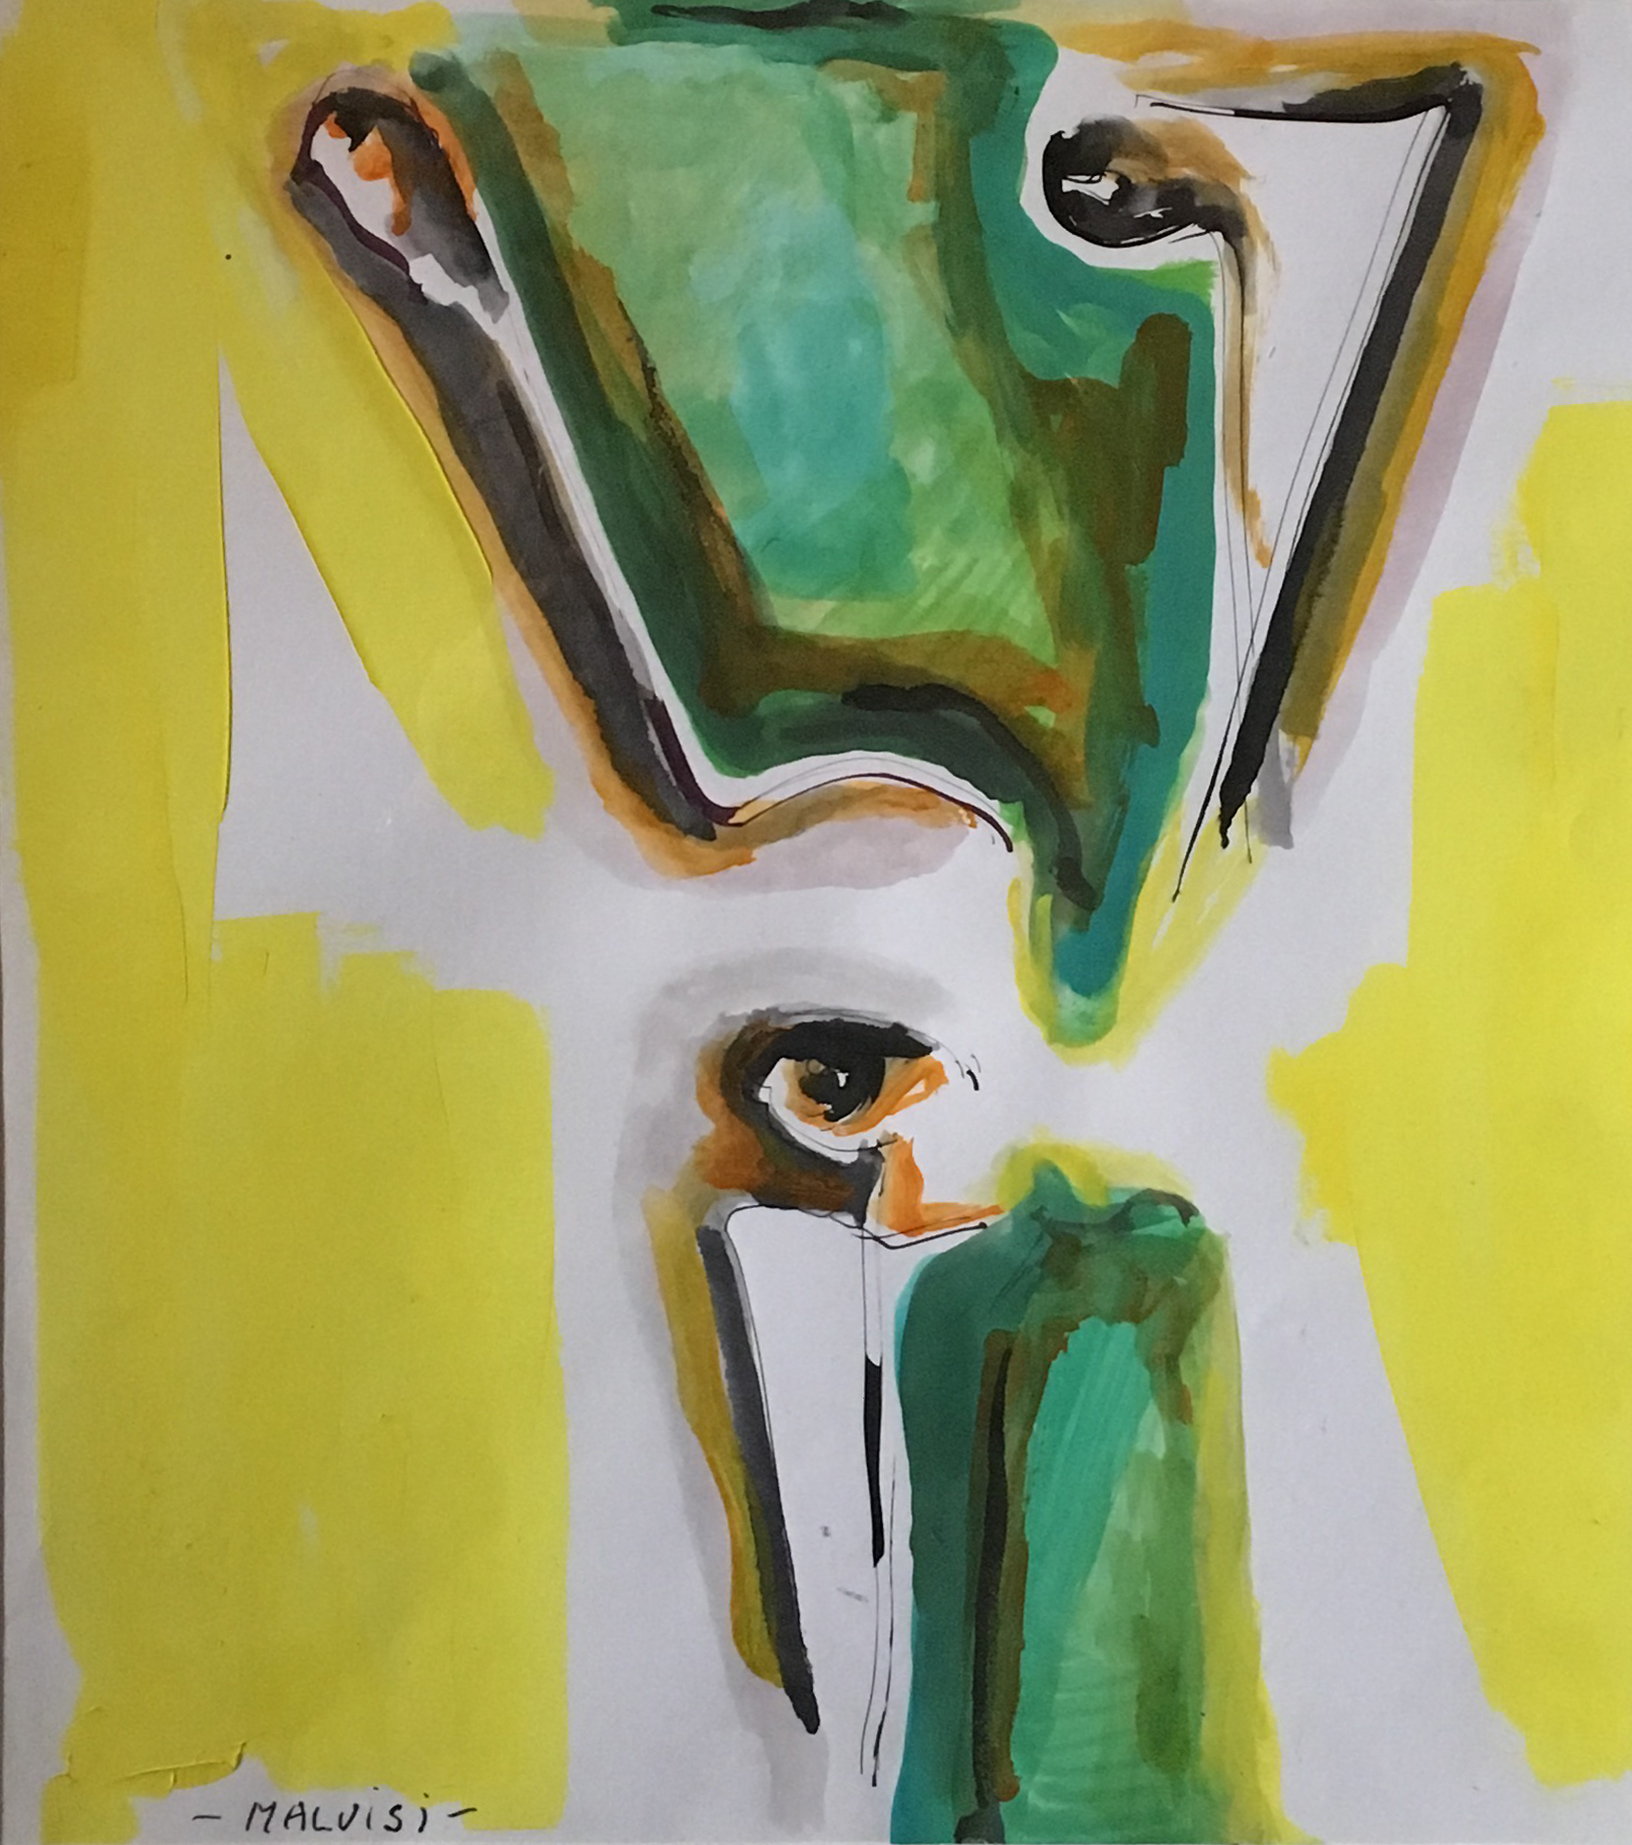 <b>Pupil without fear</b><br> (Orig.Pupilla senza spavento) <br> 1992 Ink and tempera spatula <br> cm 50 x 60